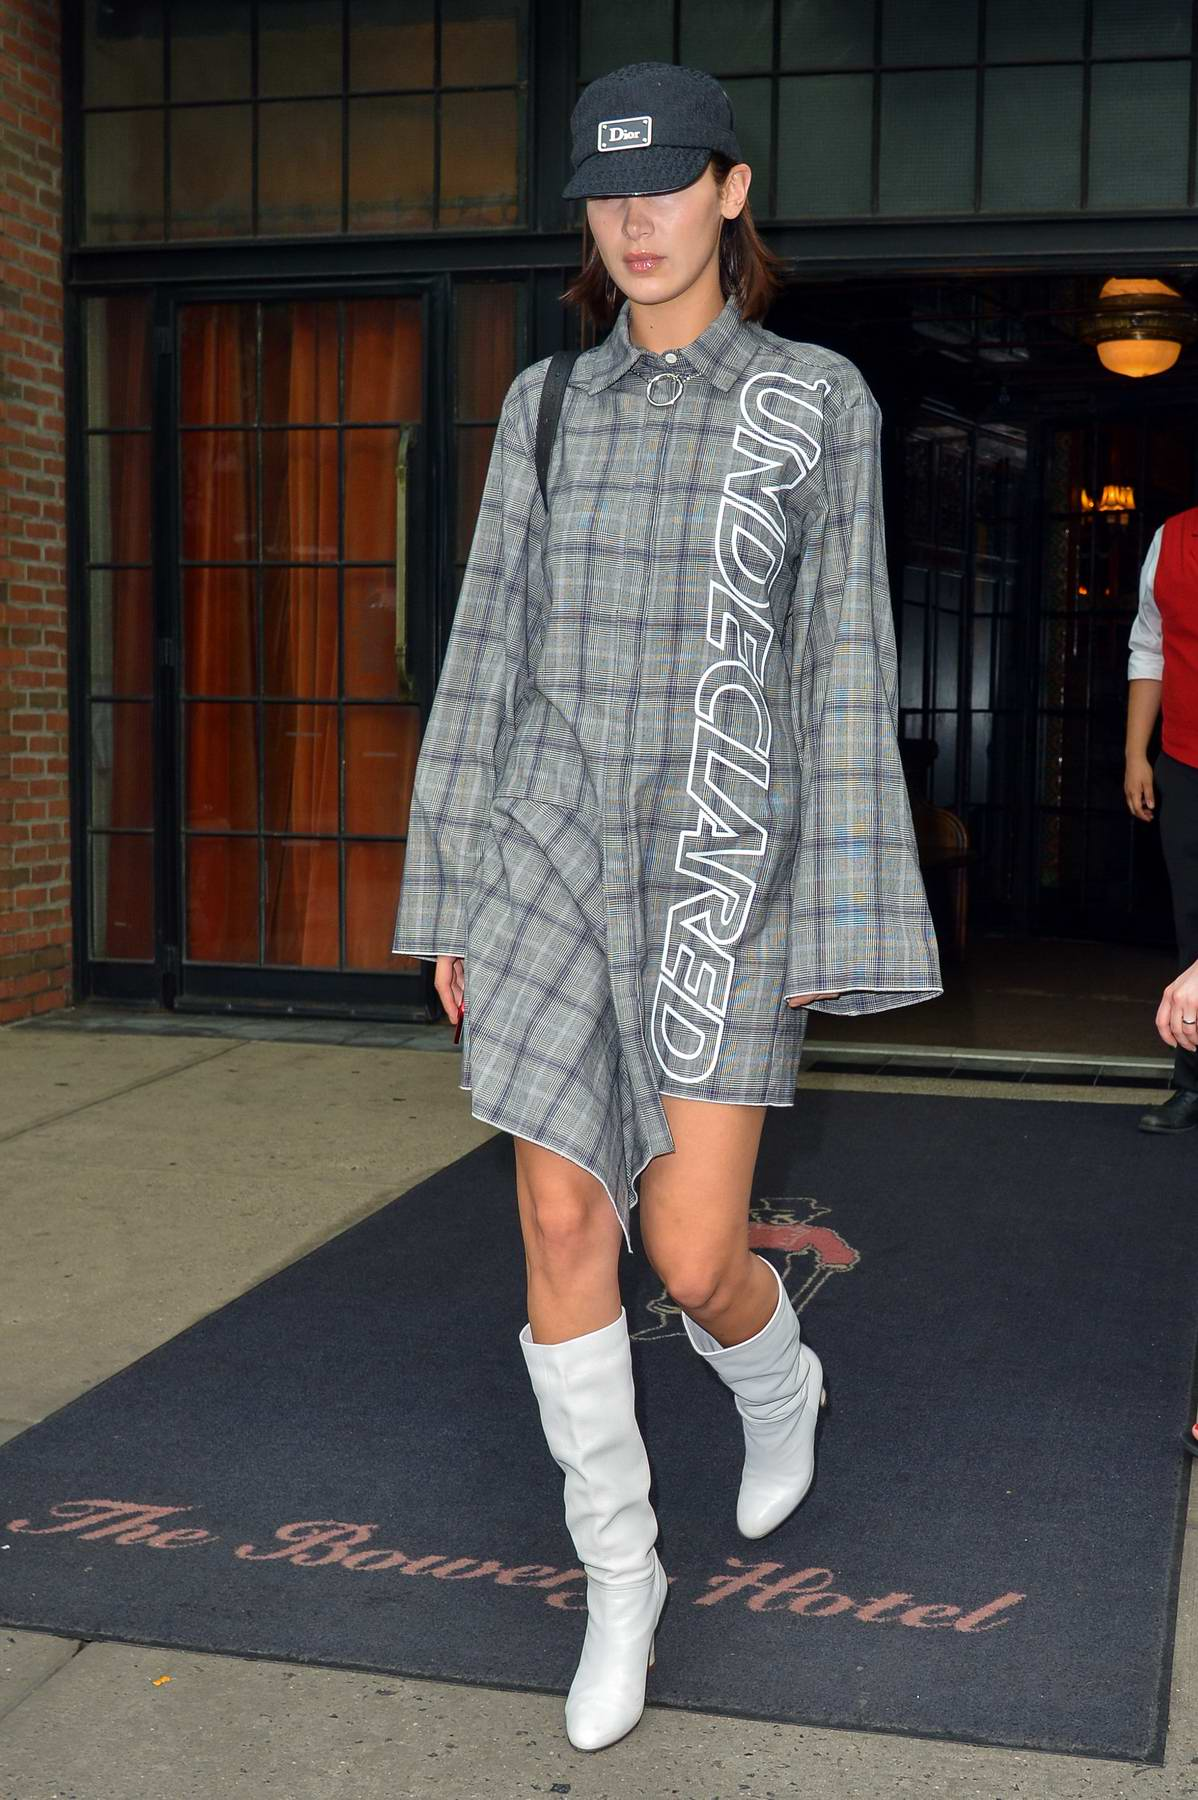 Bella Hadid steps out of Bowery Hotel wearing a plaid dress in New York City